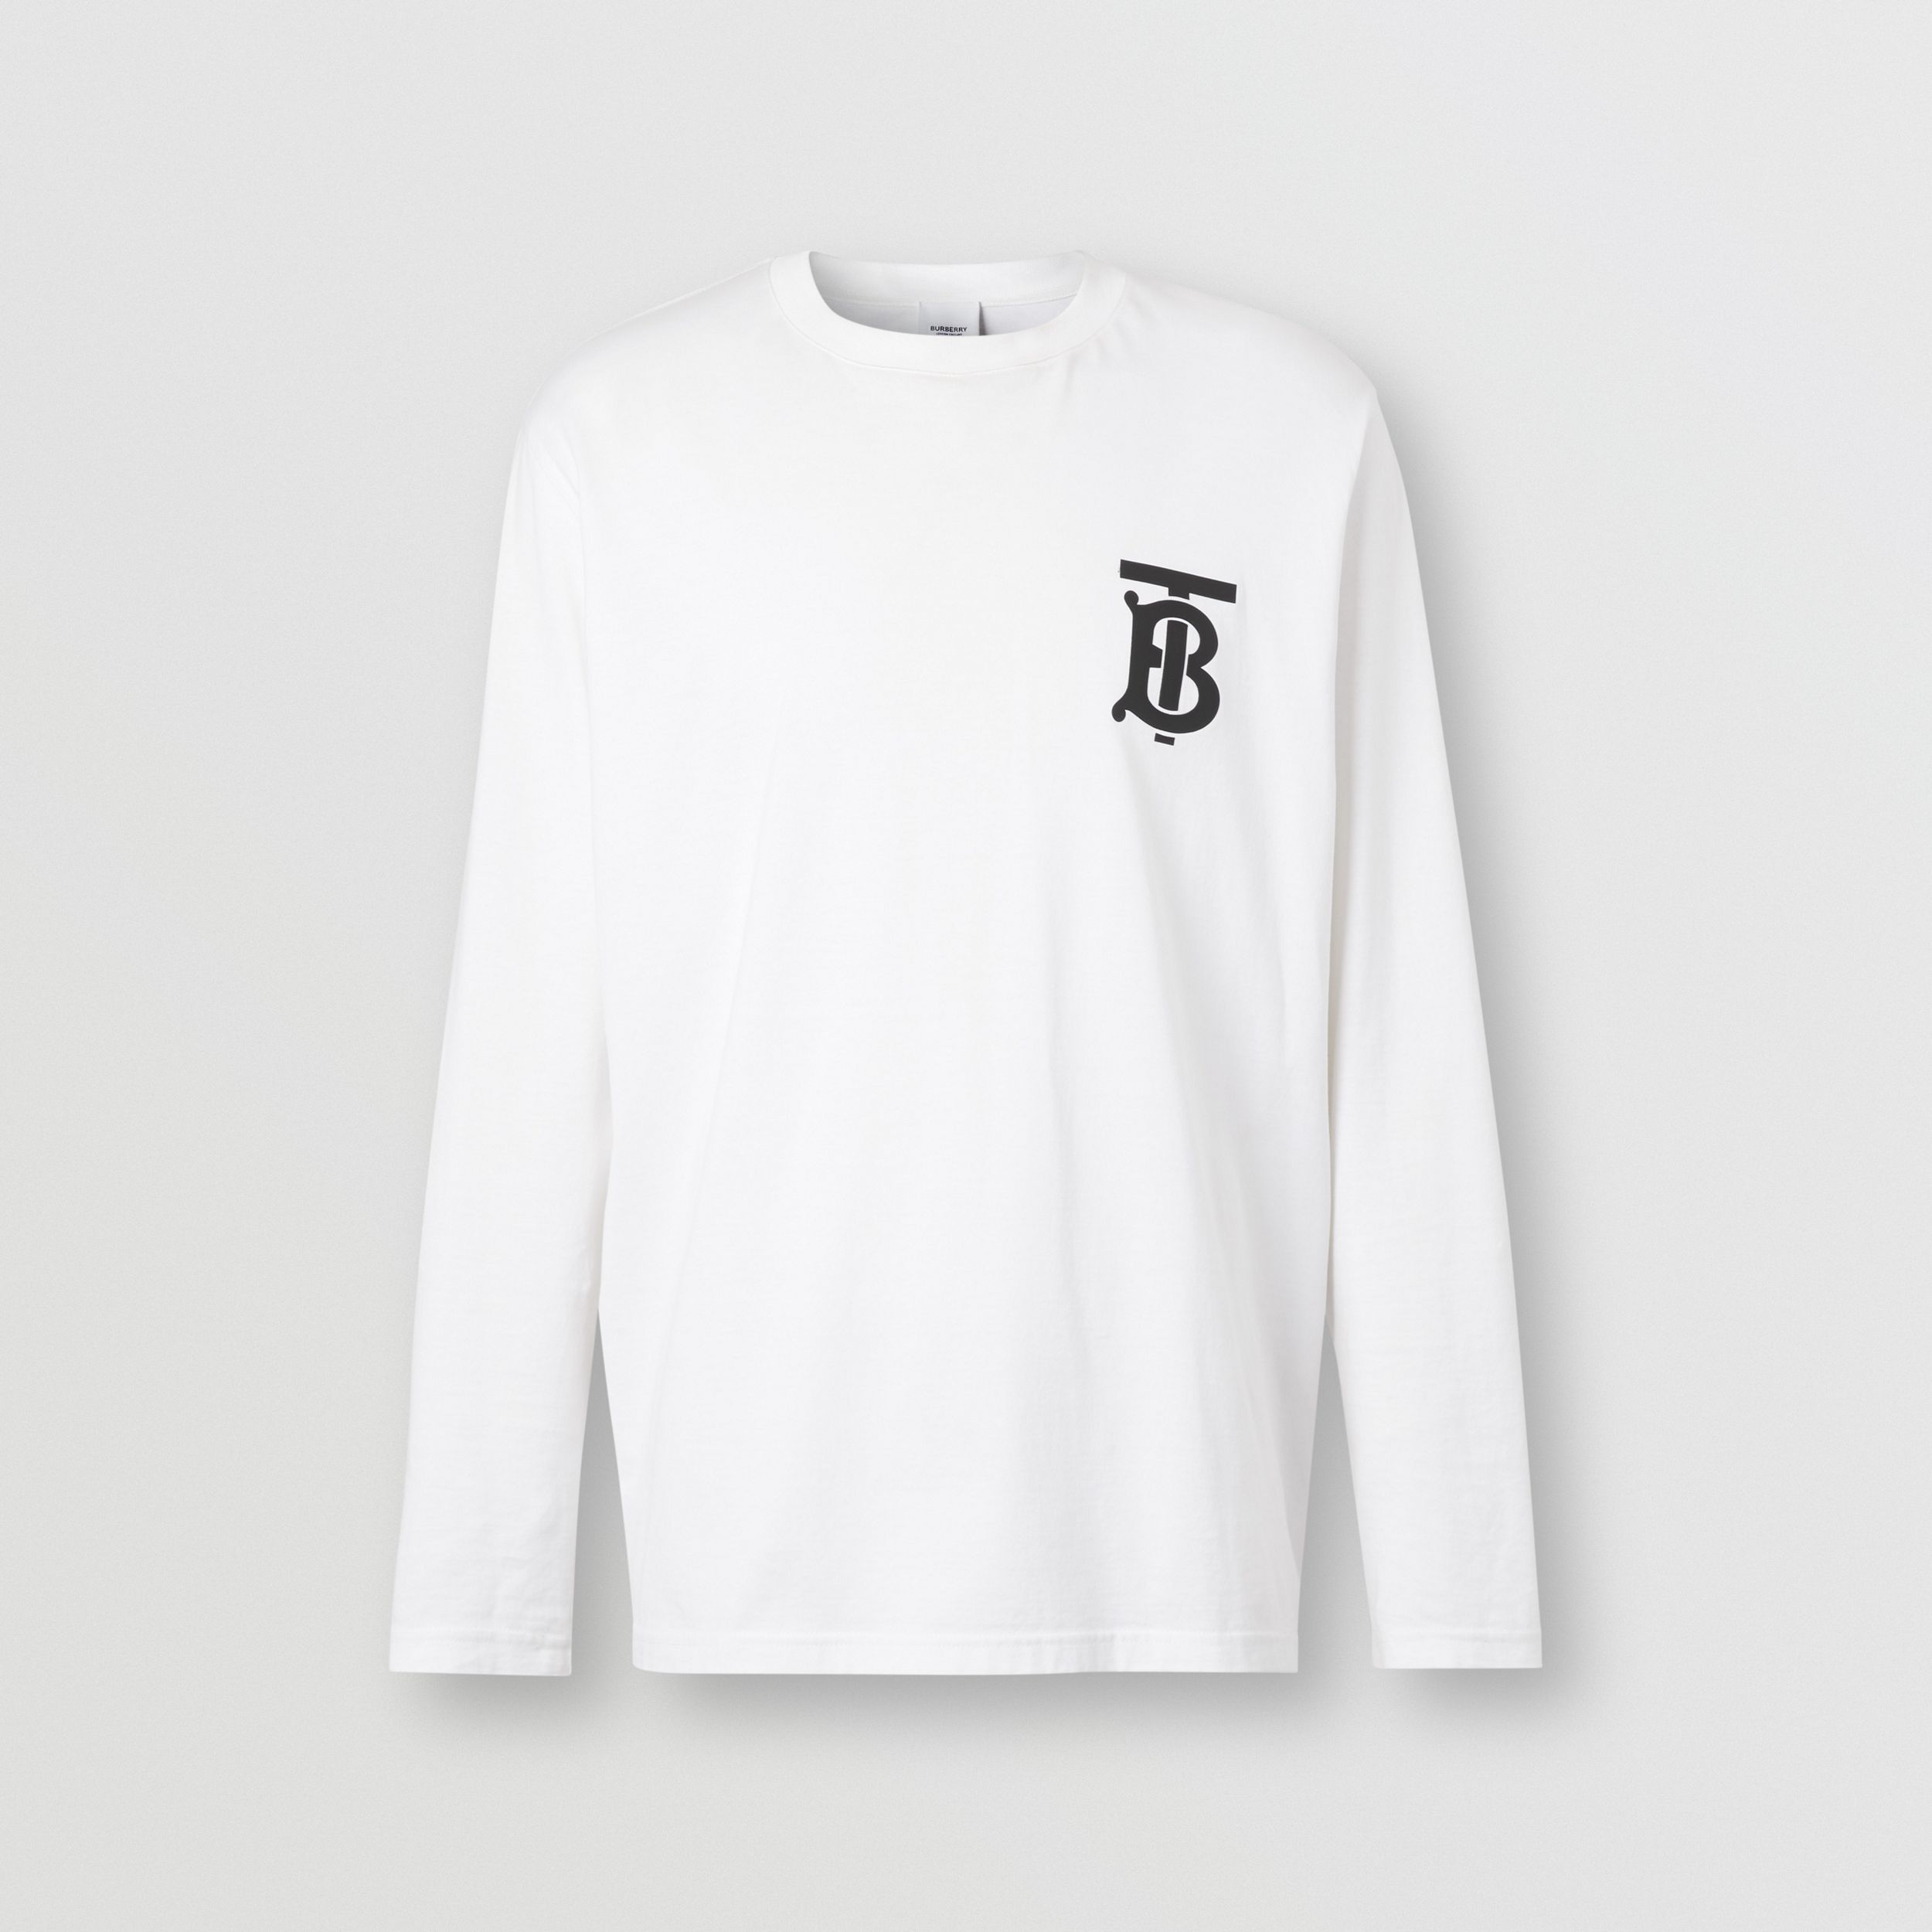 Long-sleeve Monogram Motif Cotton Top in White - Men | Burberry - 4